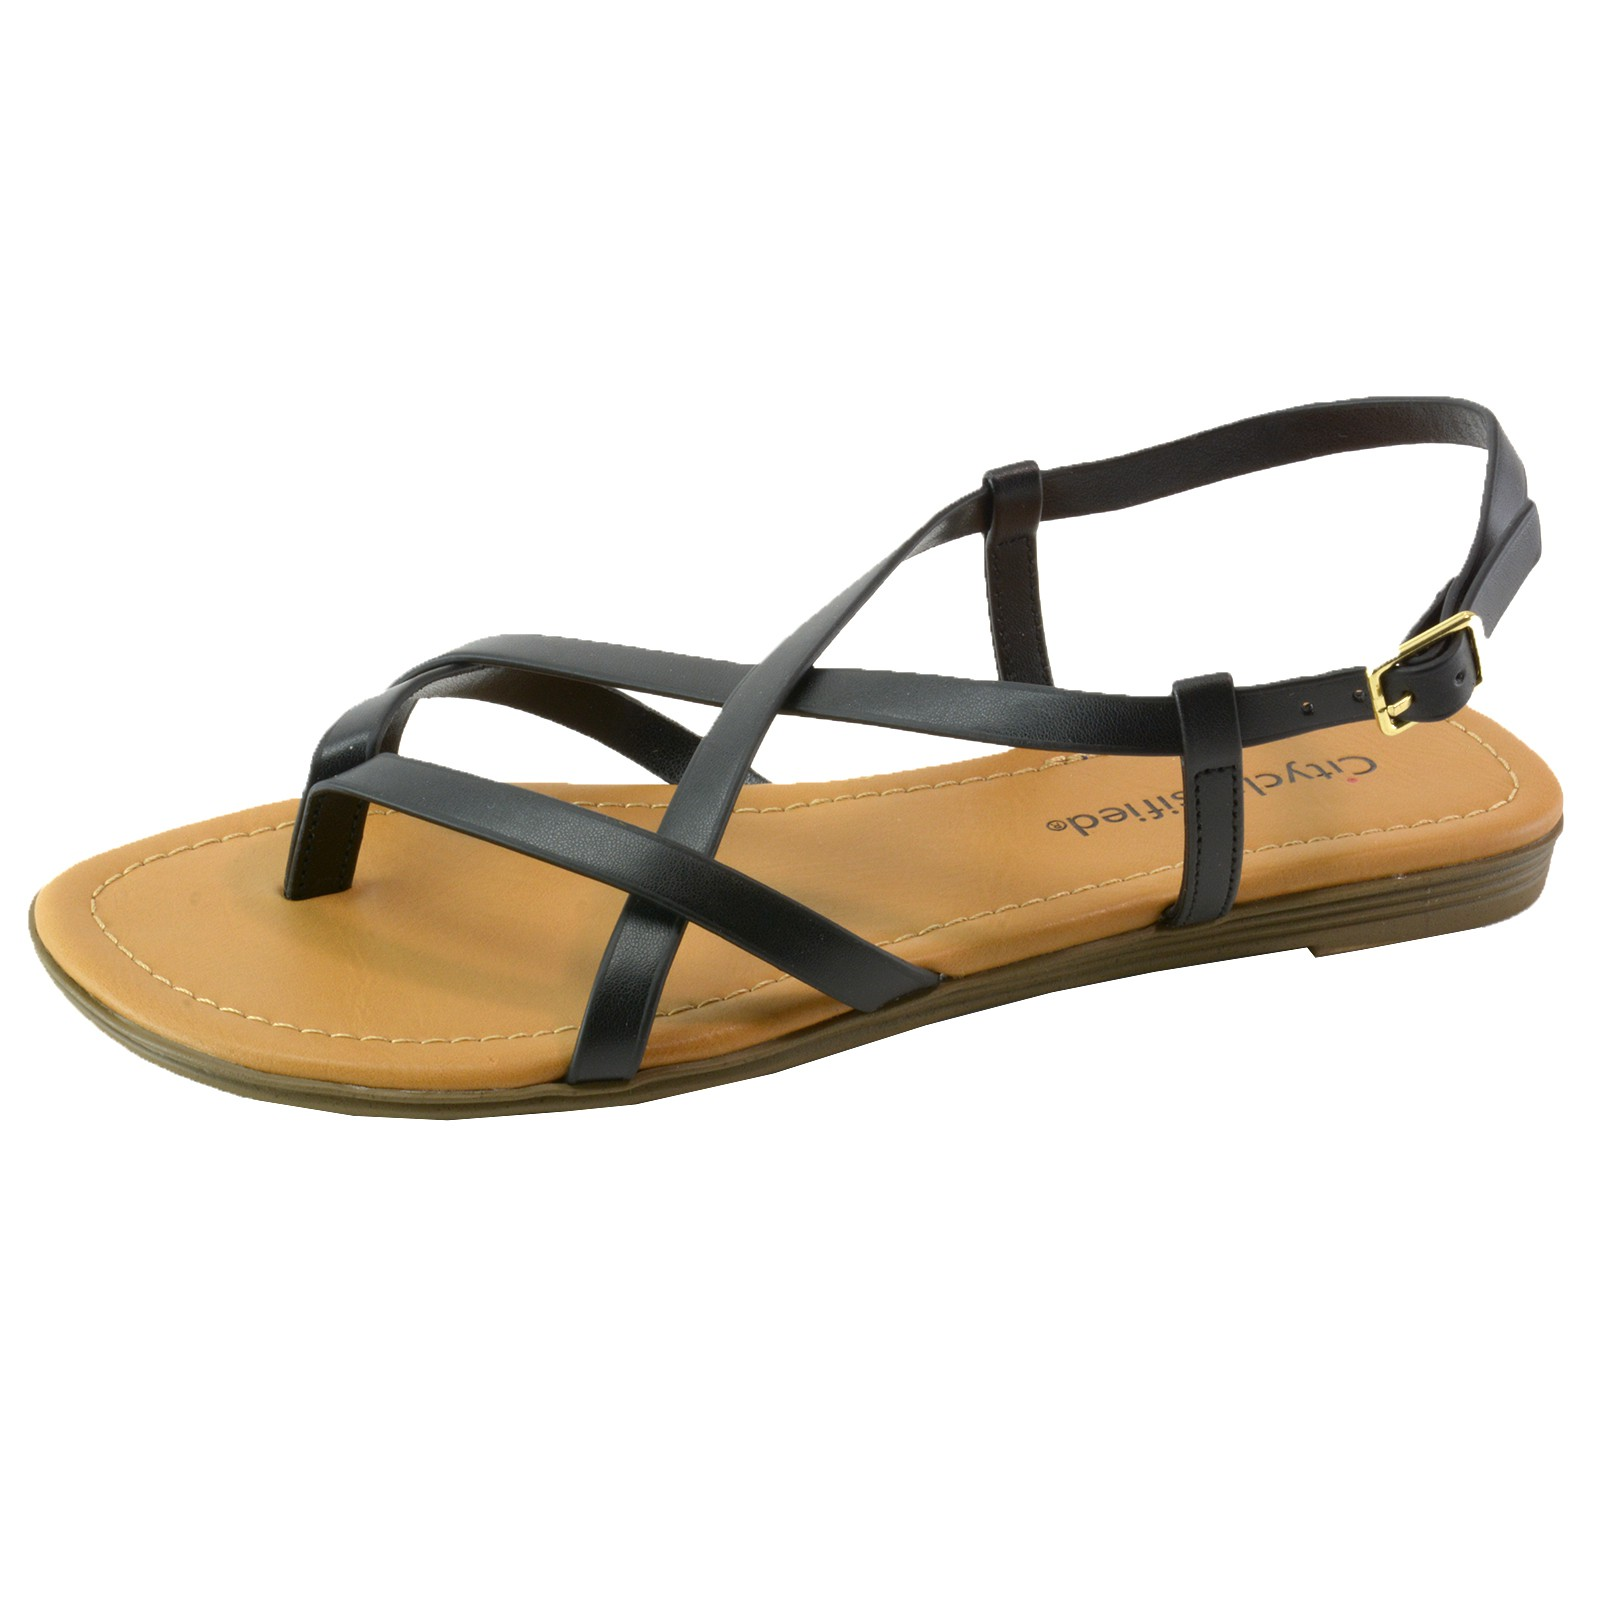 Black Strappy Shoes Size